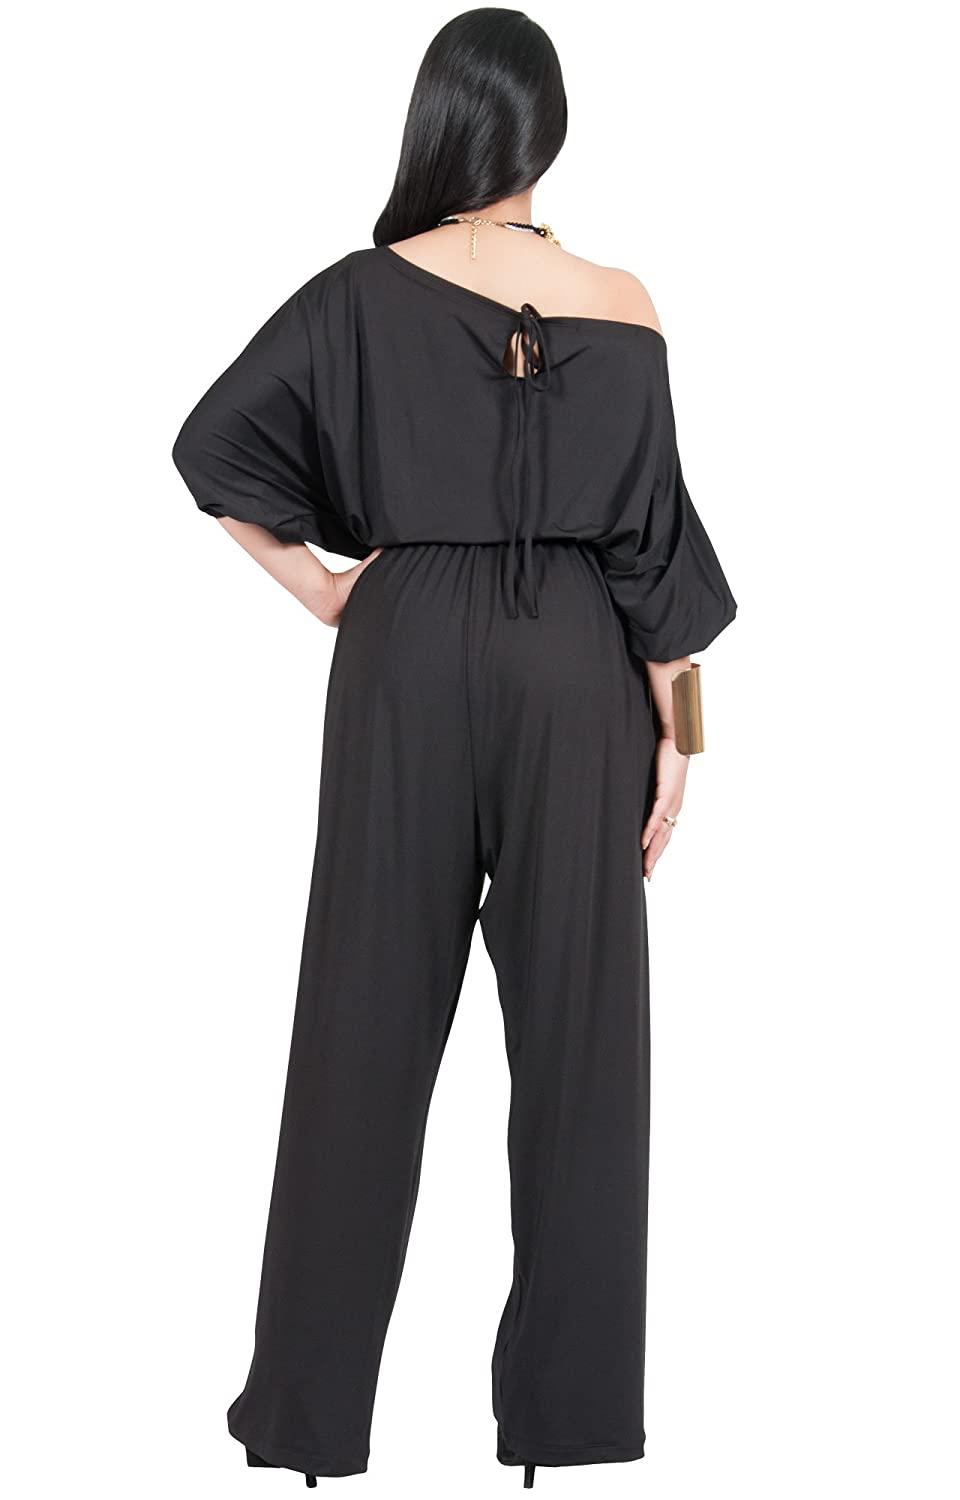 8a3ead868c3 Amazon.com  Adelyn   Vivian Plus Size Womens Sexy One Shoulder 3 4 Sleeve  Evening Jumpsuit  Clothing